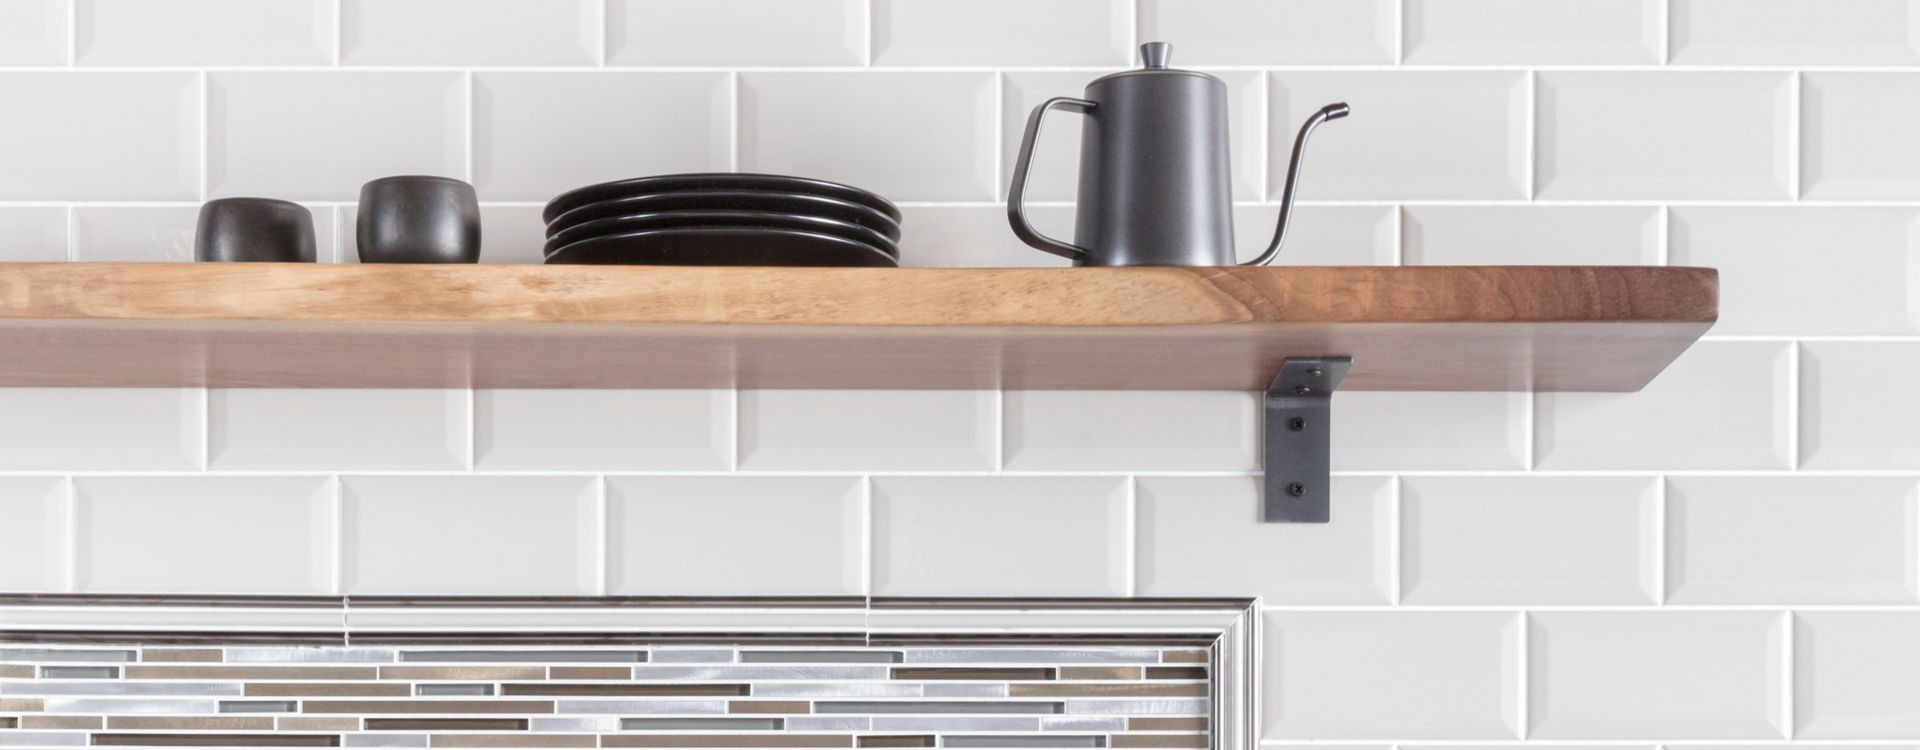 - Backsplash Tile Designs, Trends & Ideas For 2019 – The Tile Shop